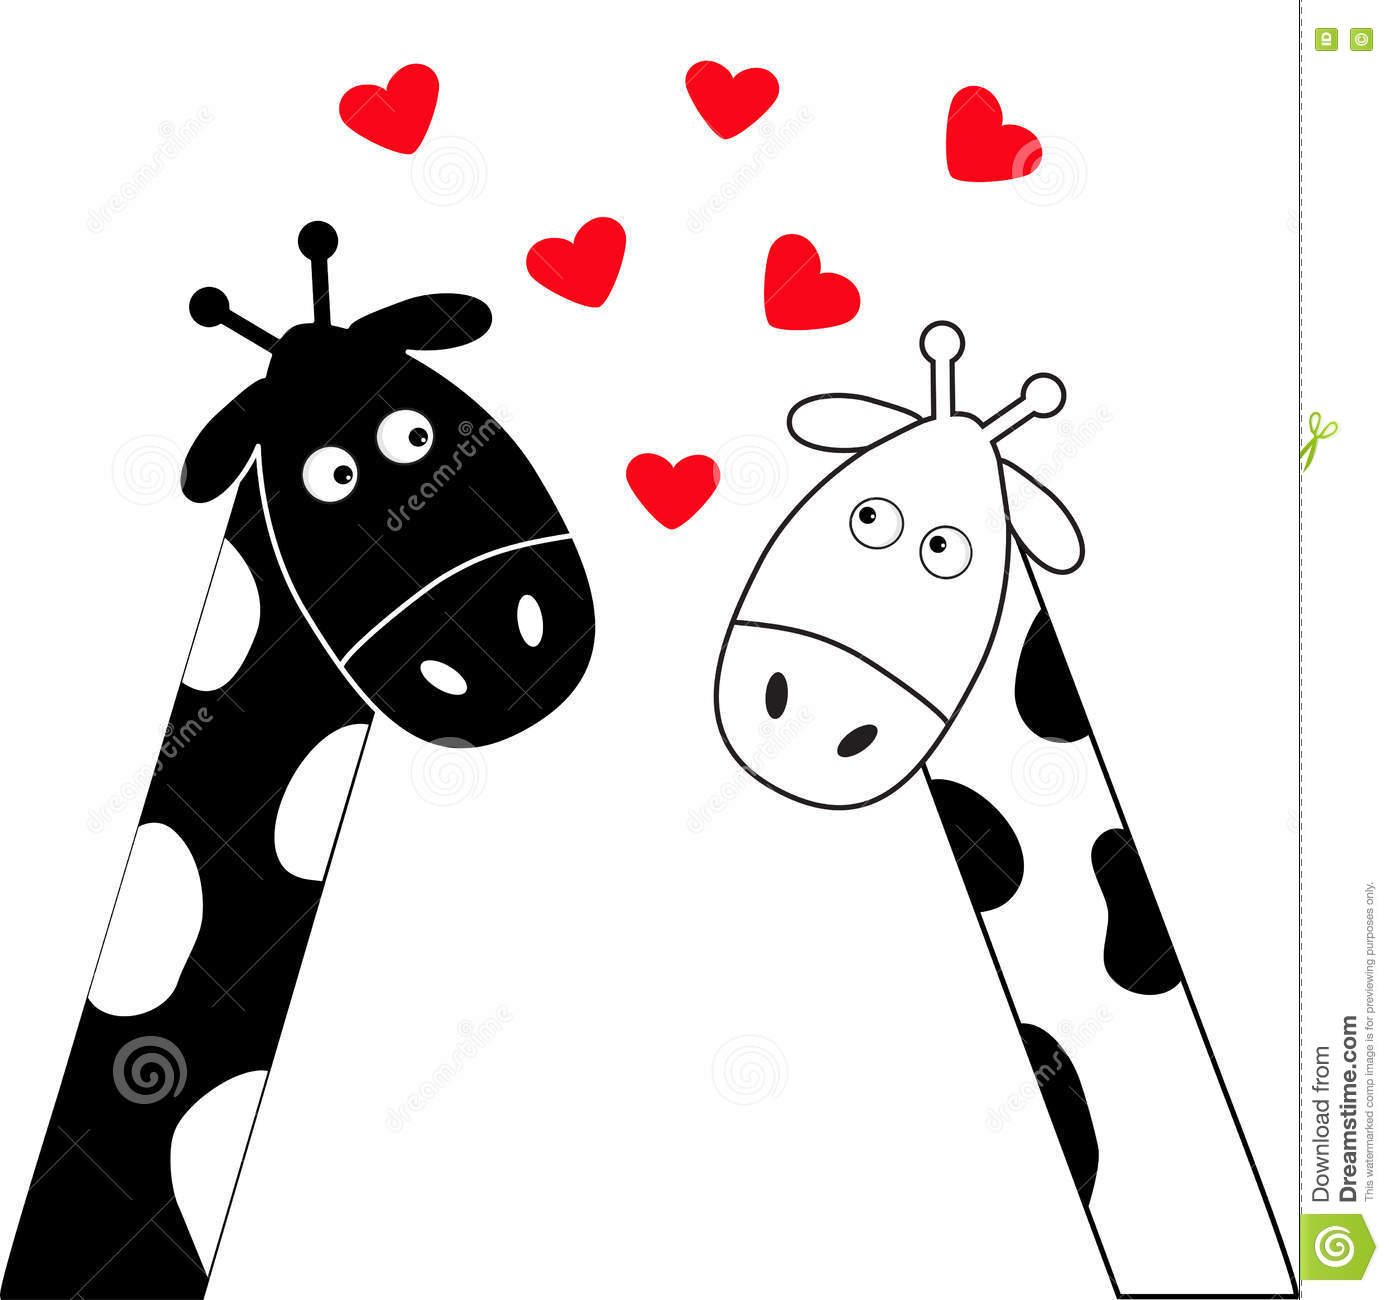 Cute Cartoon Black White Giraffe Boy And Girl Camelopard Couple On Date Long Neck -3163